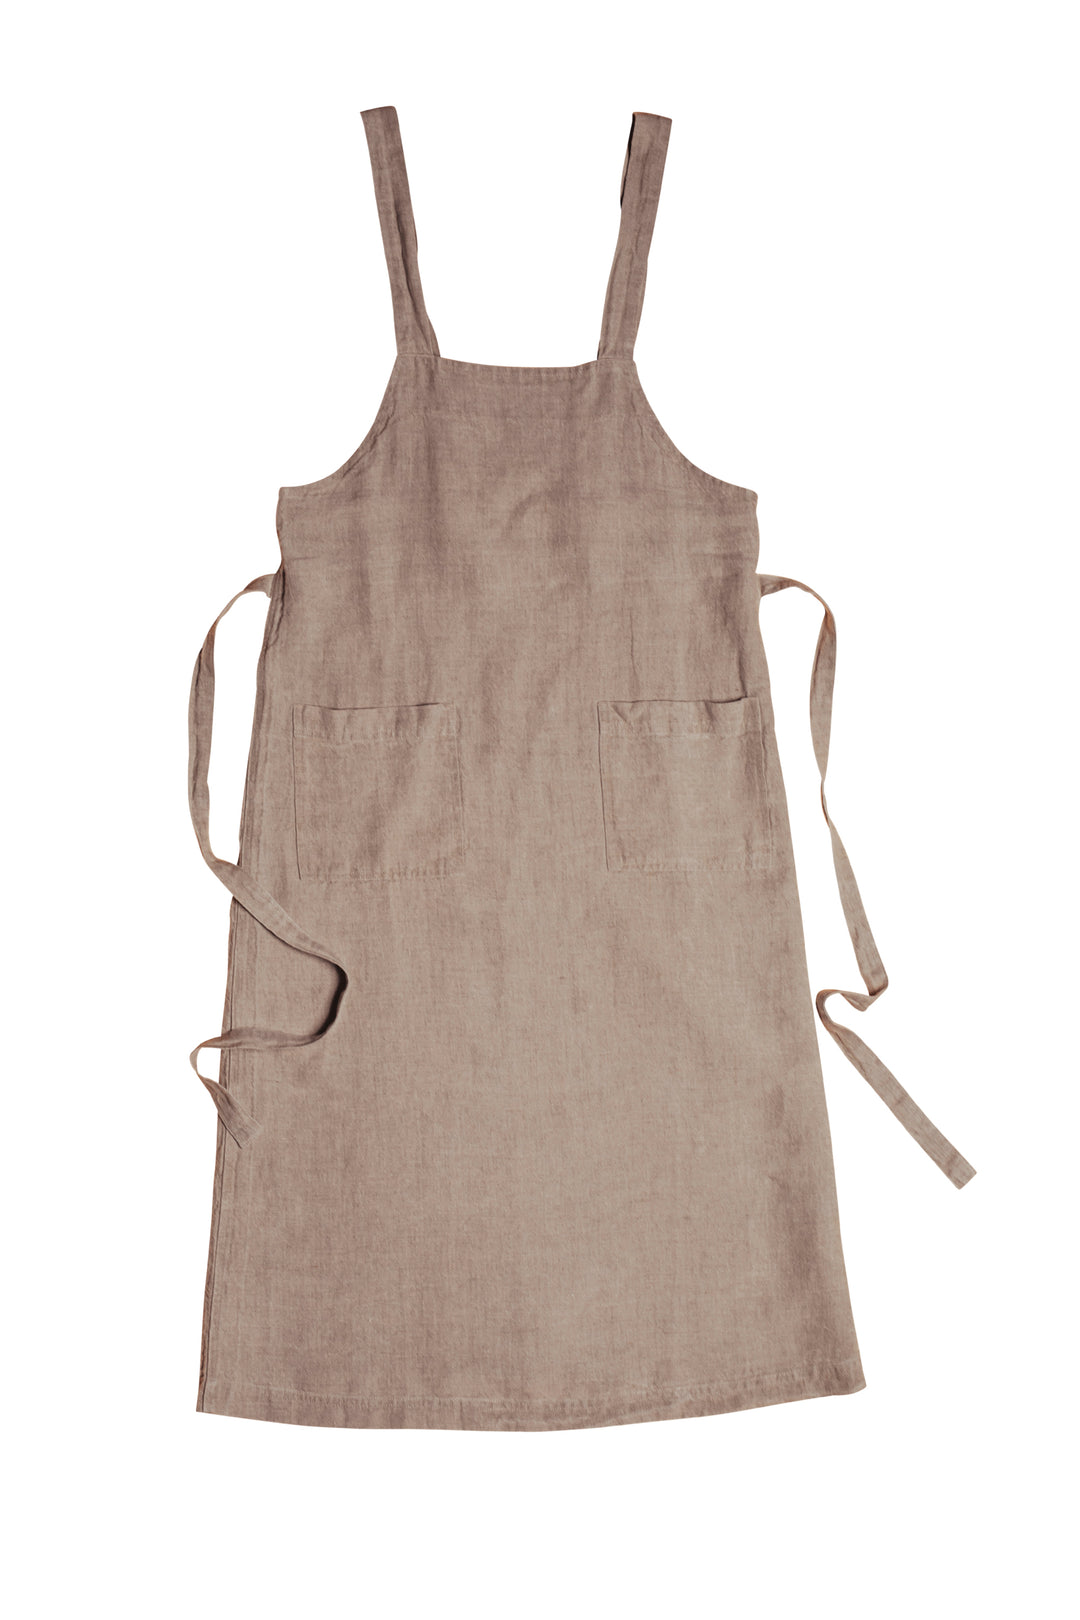 raw linen flax market apron pinafore dress